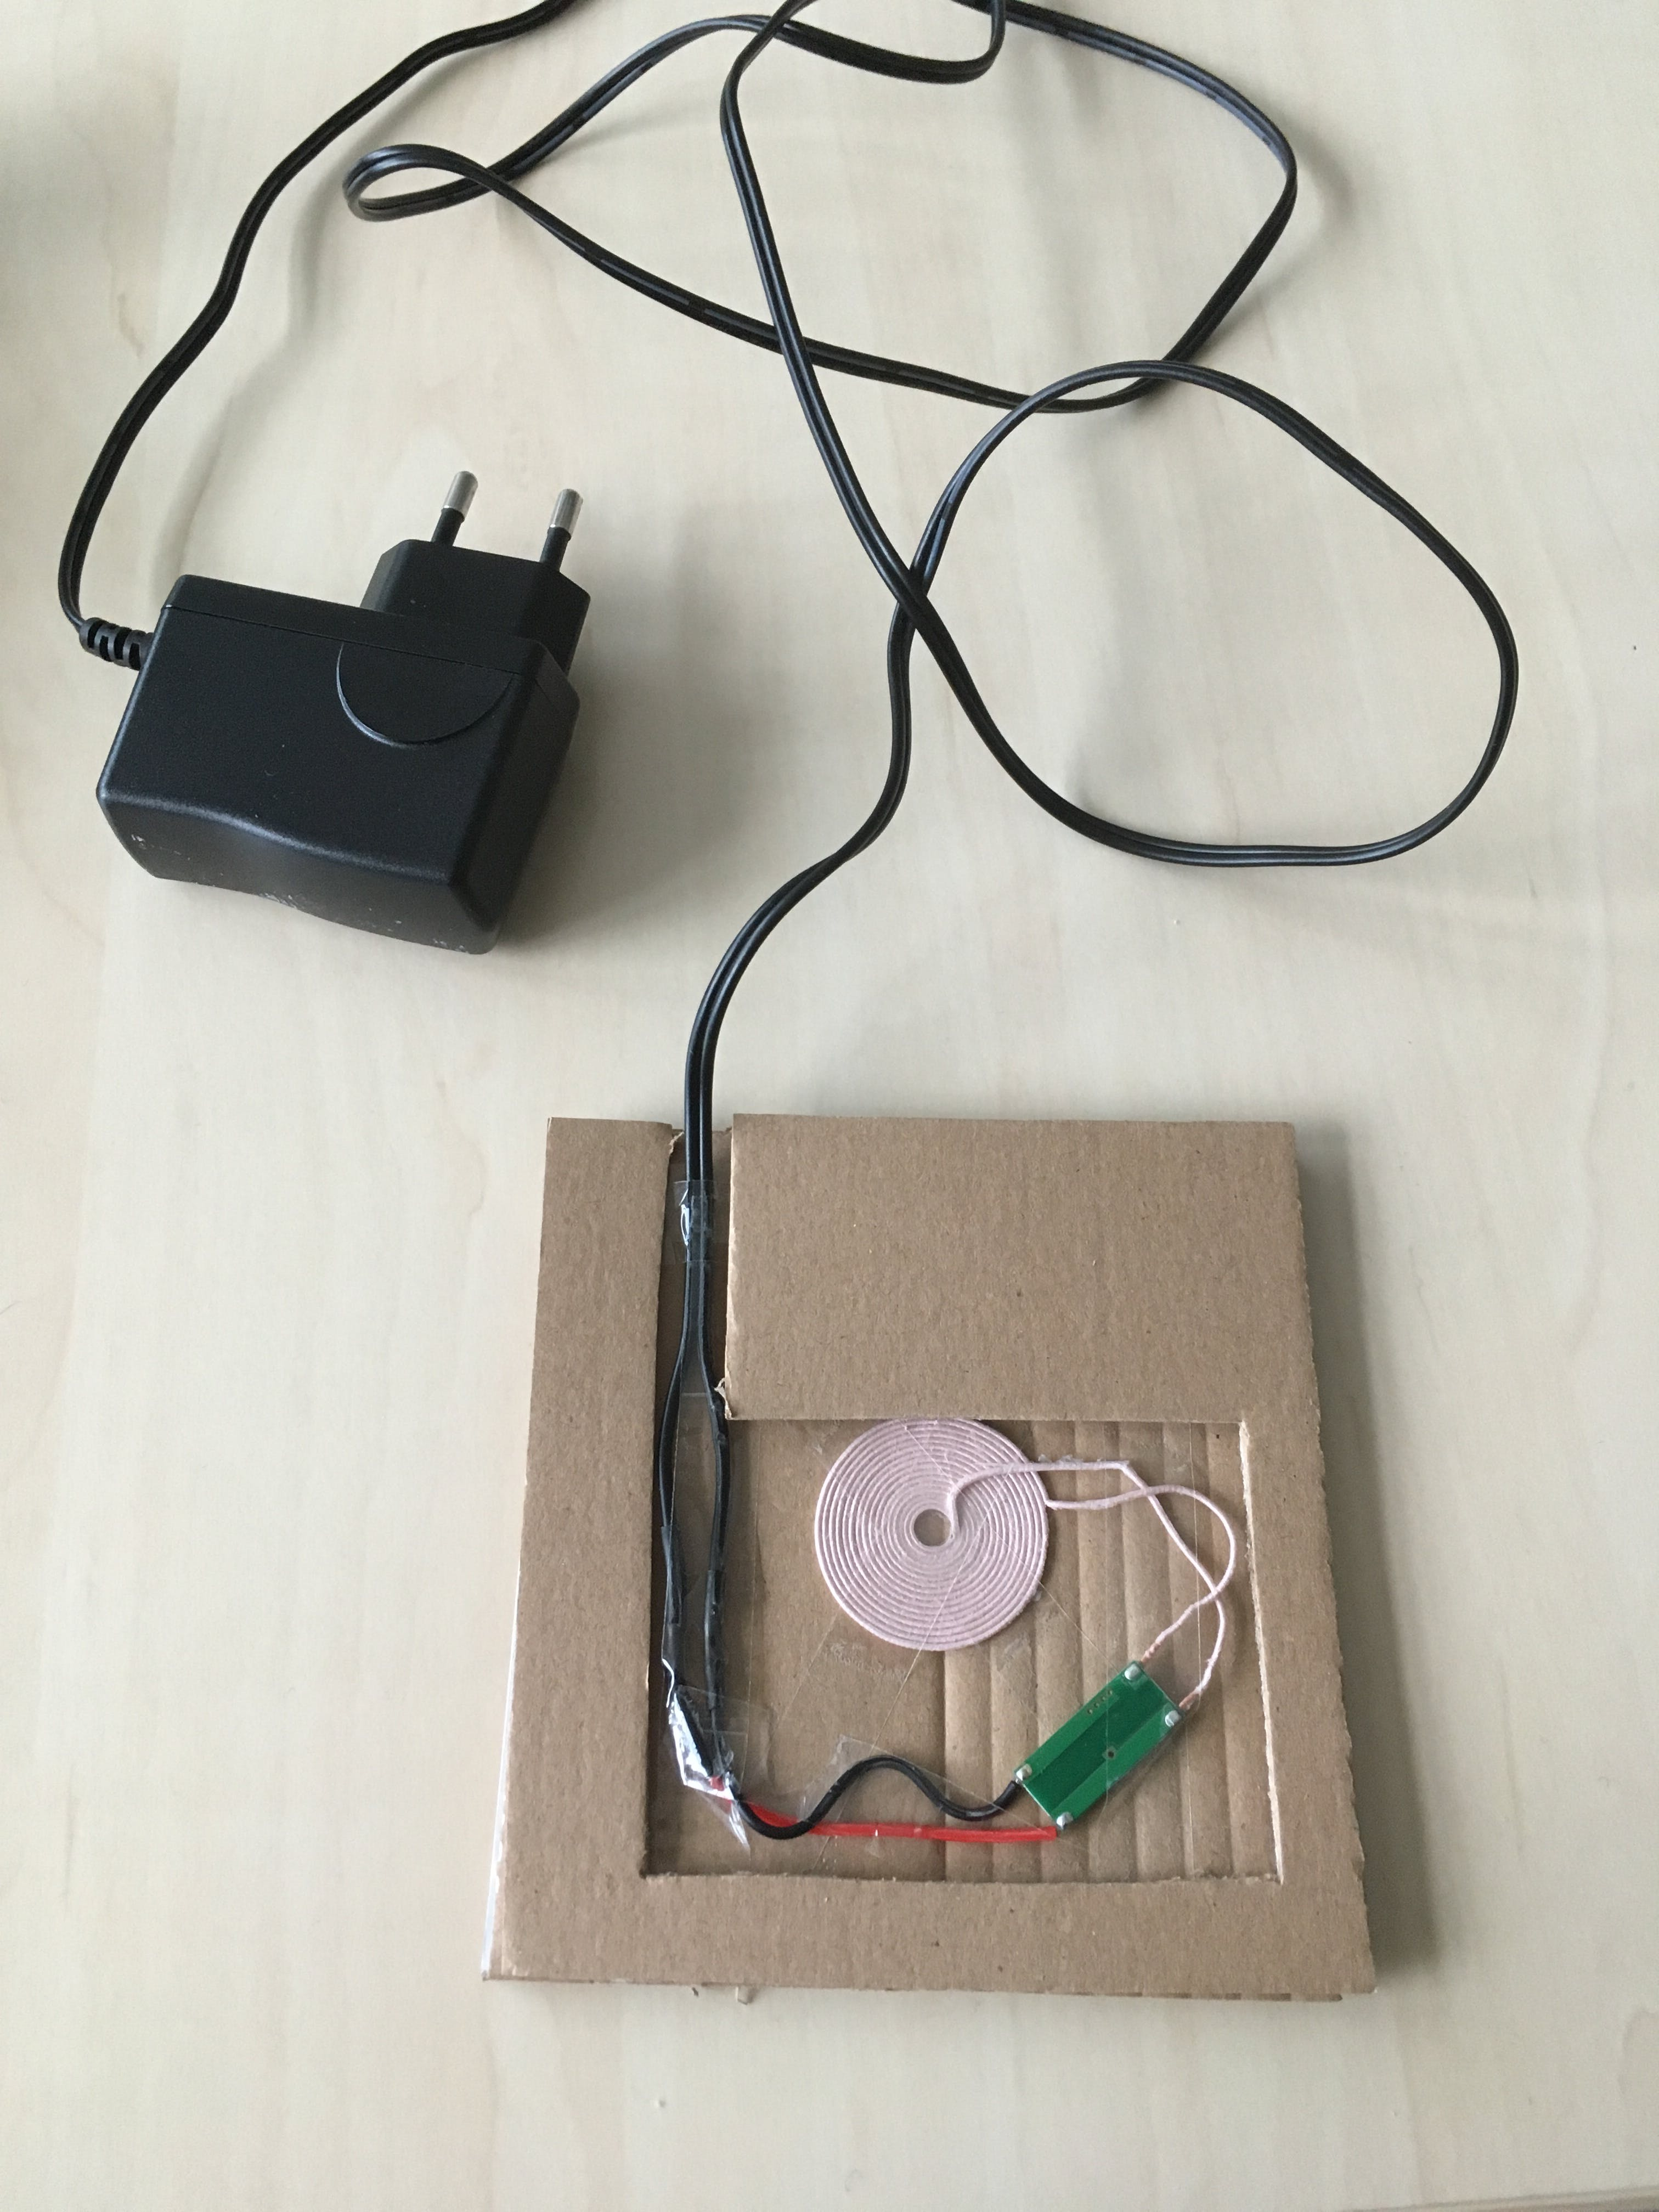 First test for the inductive transmitter